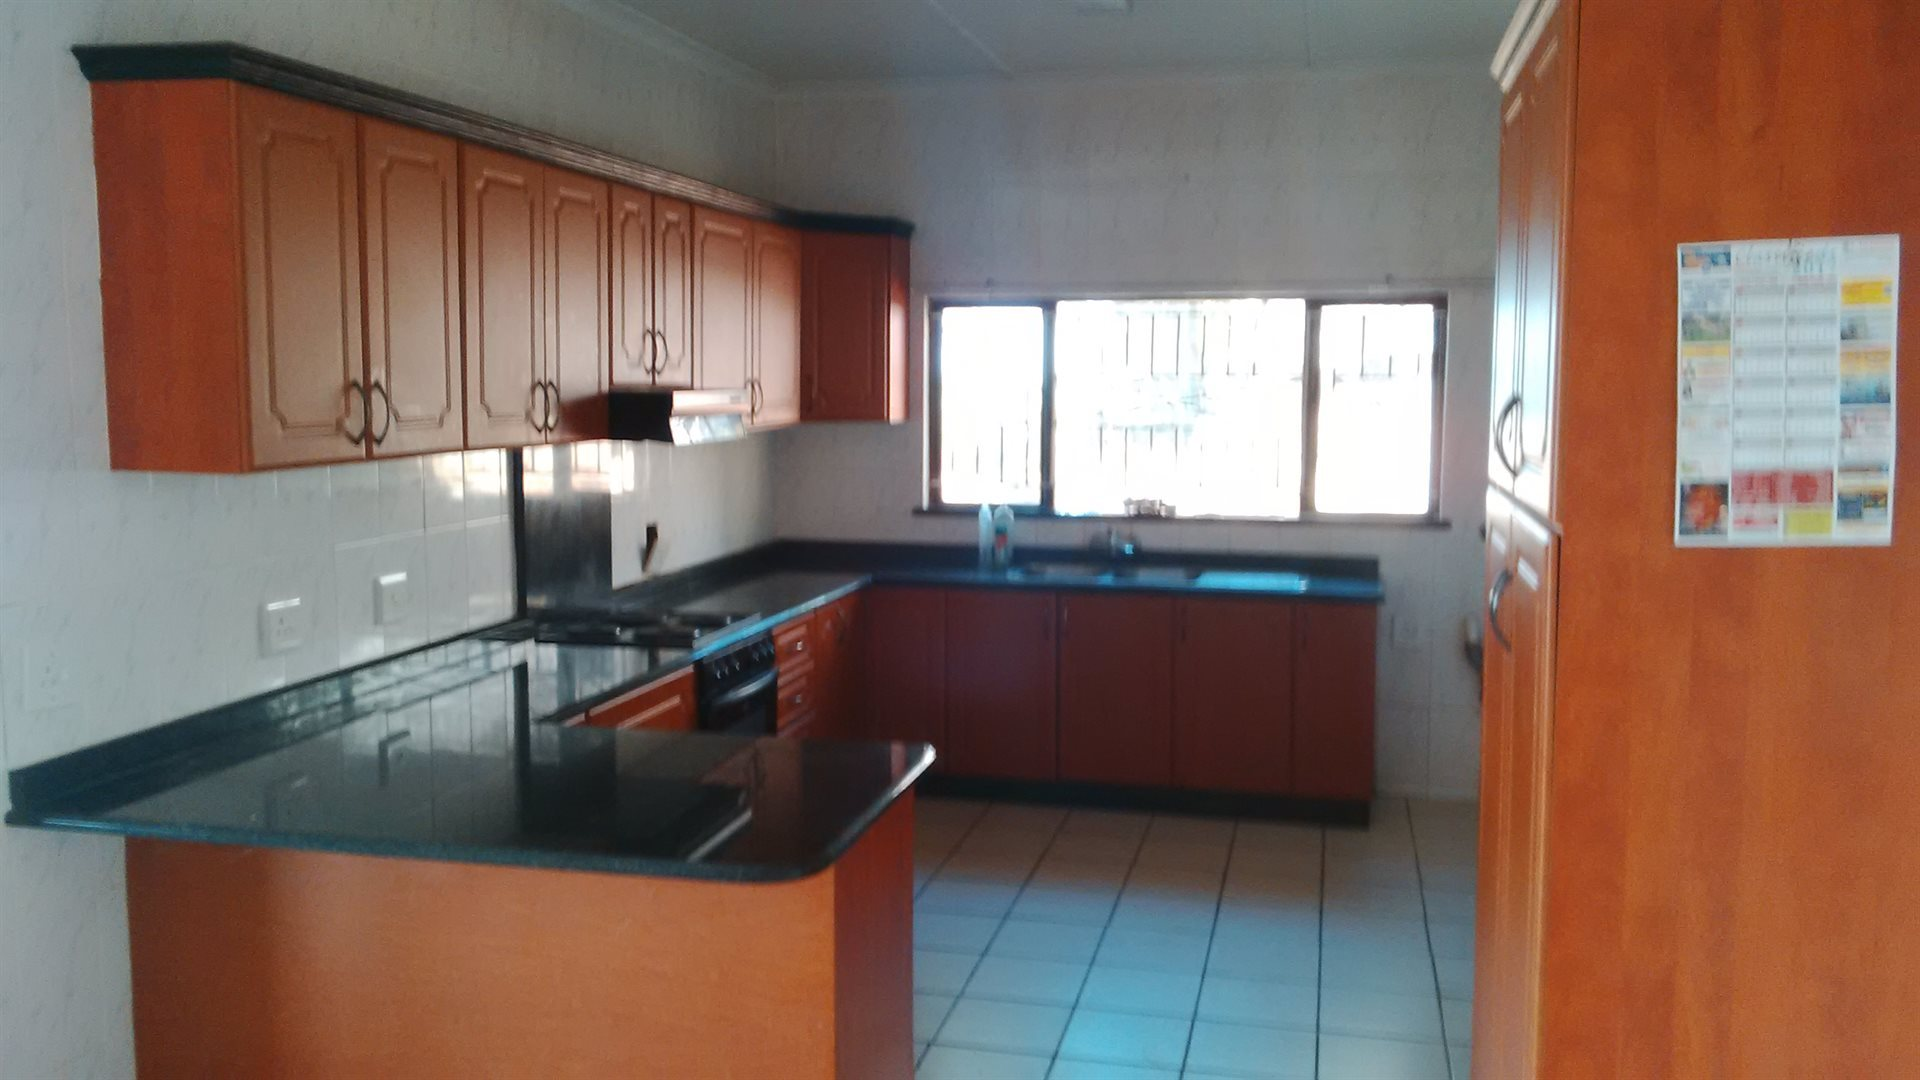 Doonside property for sale. Ref No: 13522465. Picture no 2